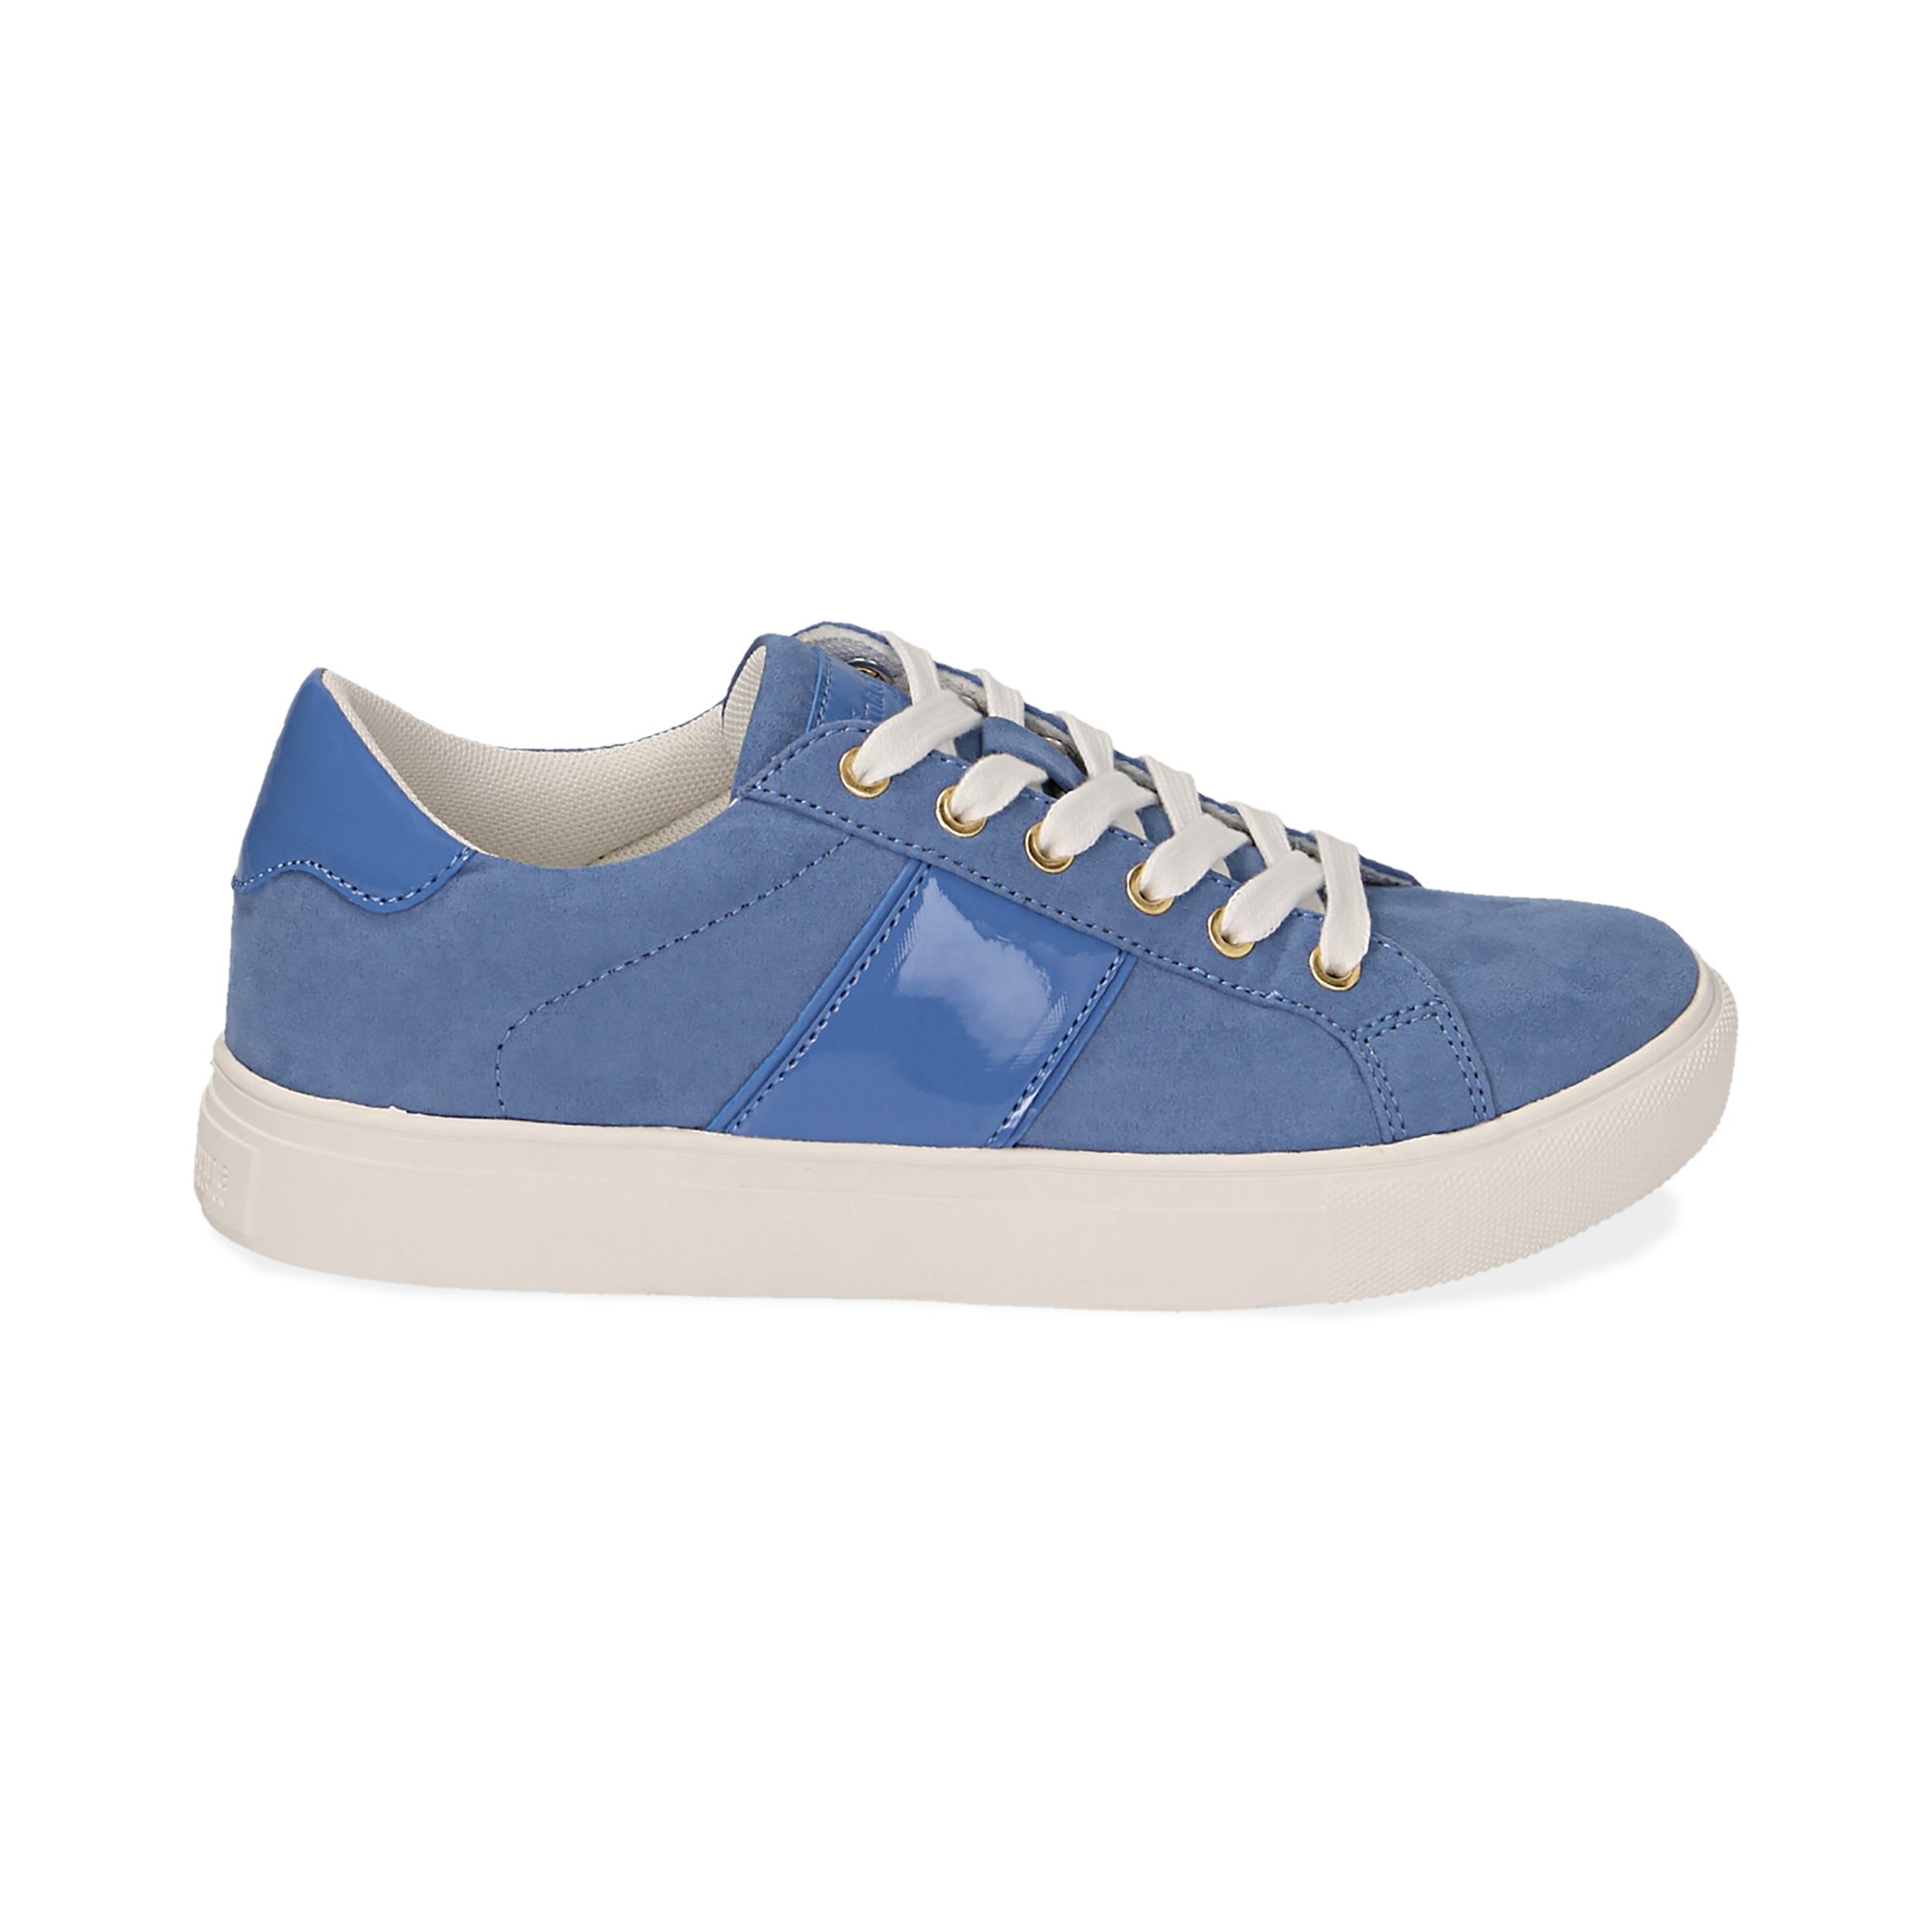 Sneakers de microfibra en color azul